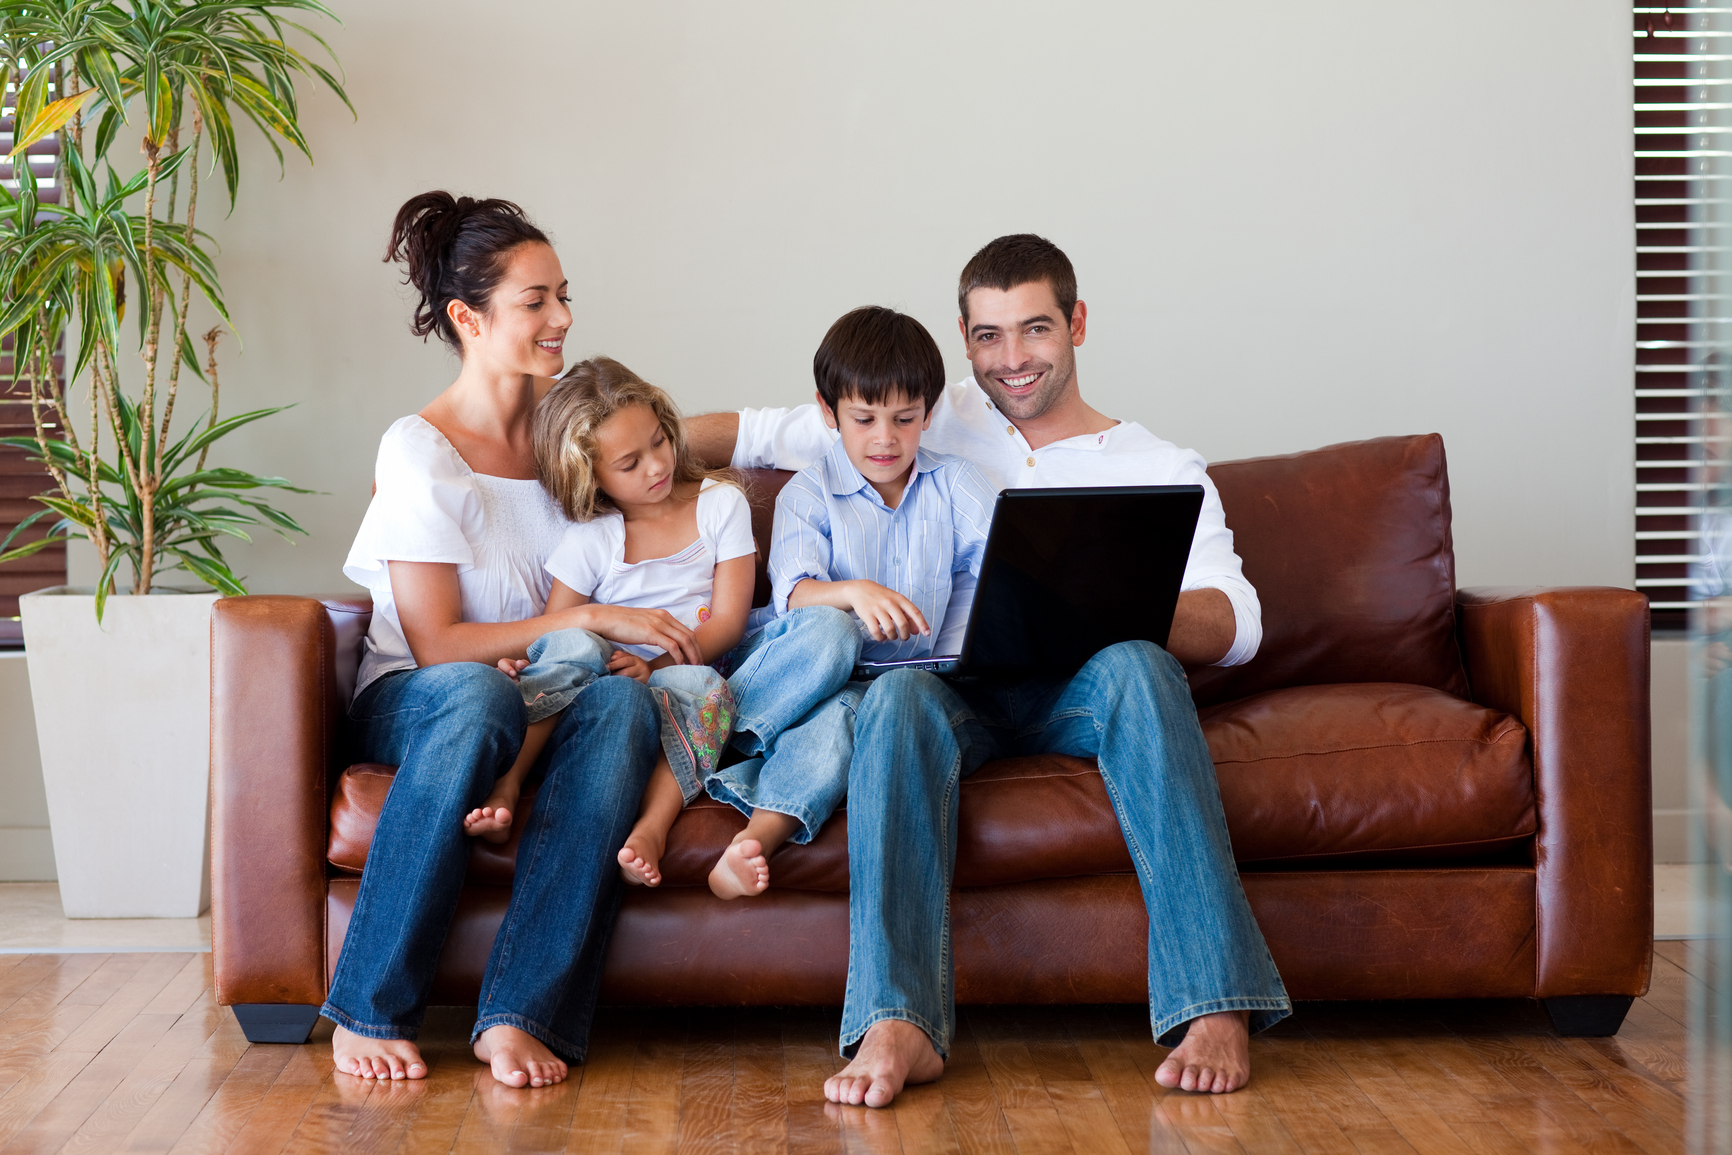 Family playing together with a laptop on a couch